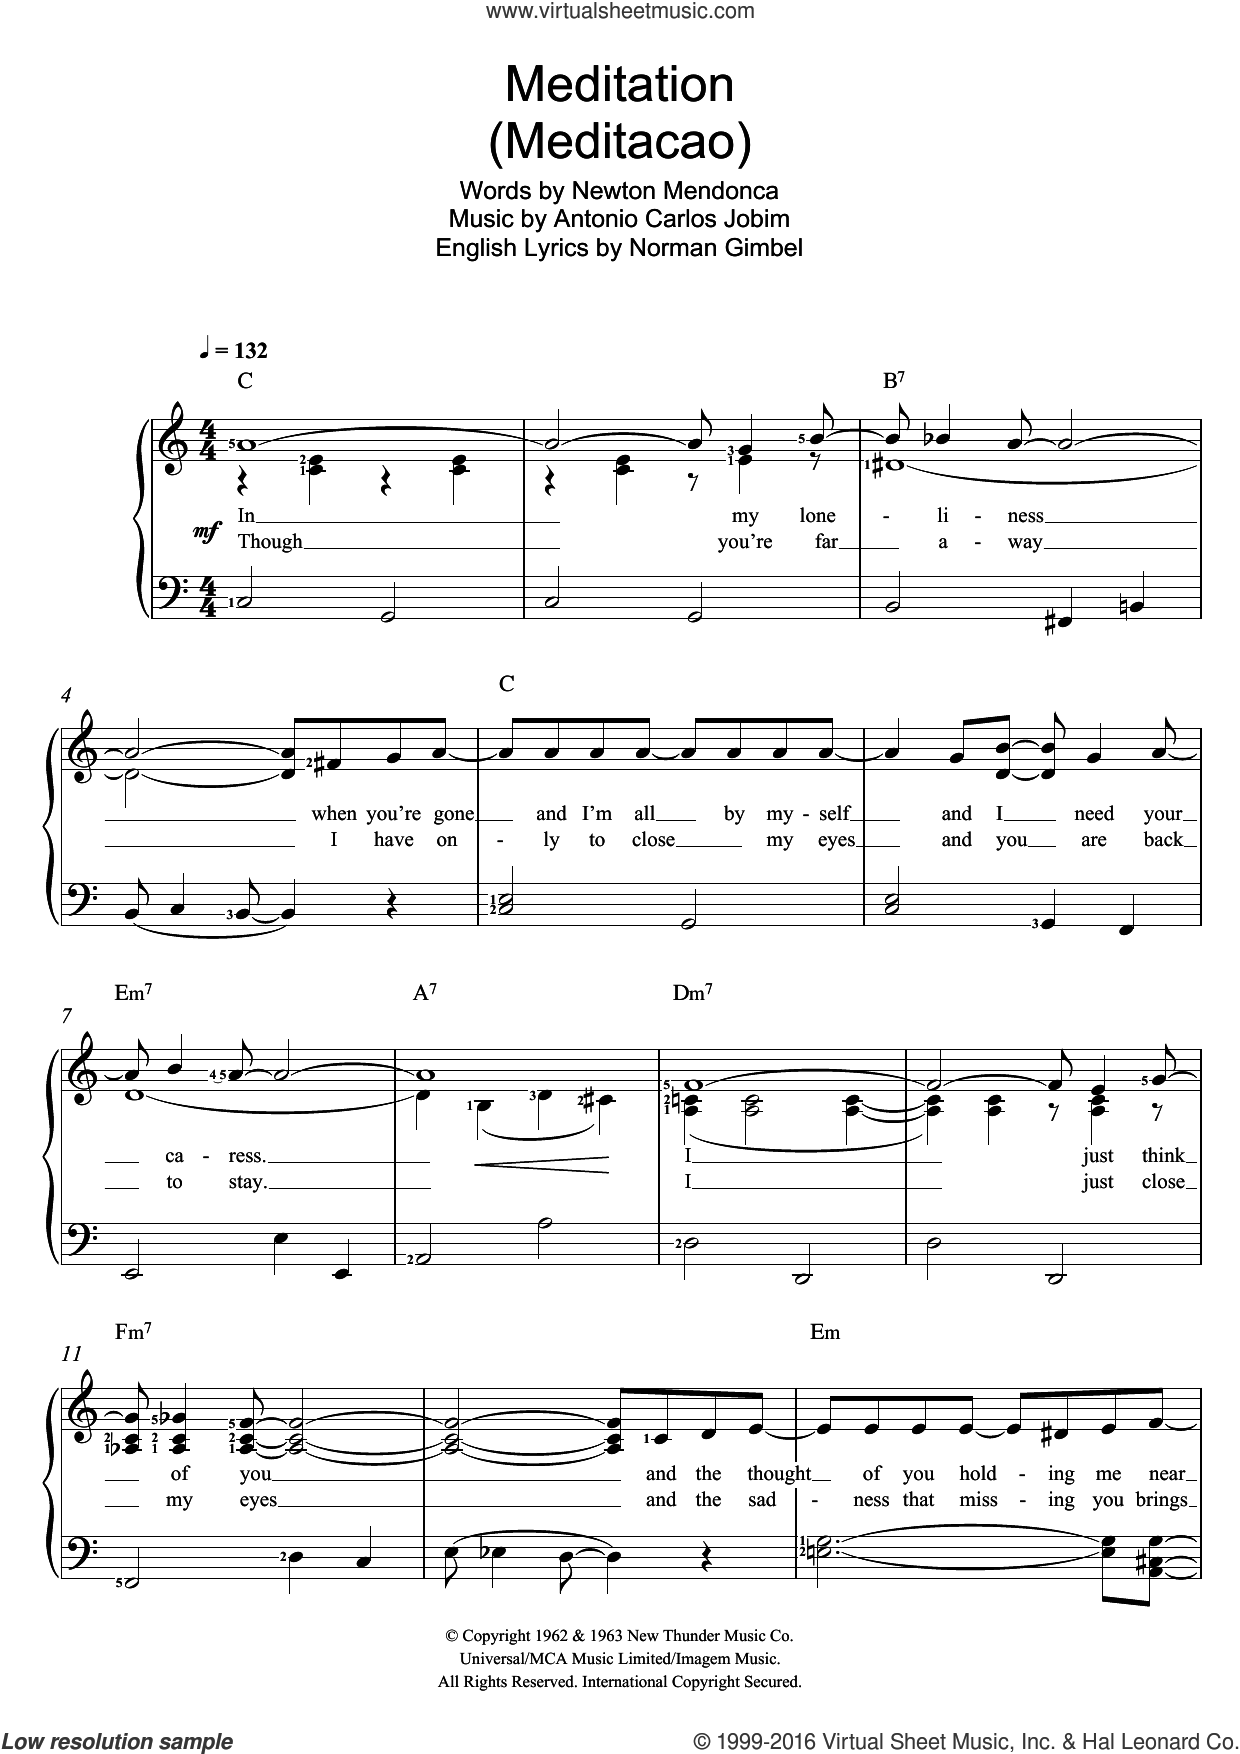 Meditation (Meditacao) sheet music for voice and piano by Antonio Carlos Jobim, Norman Gimbel and Newton Mendonca, intermediate skill level